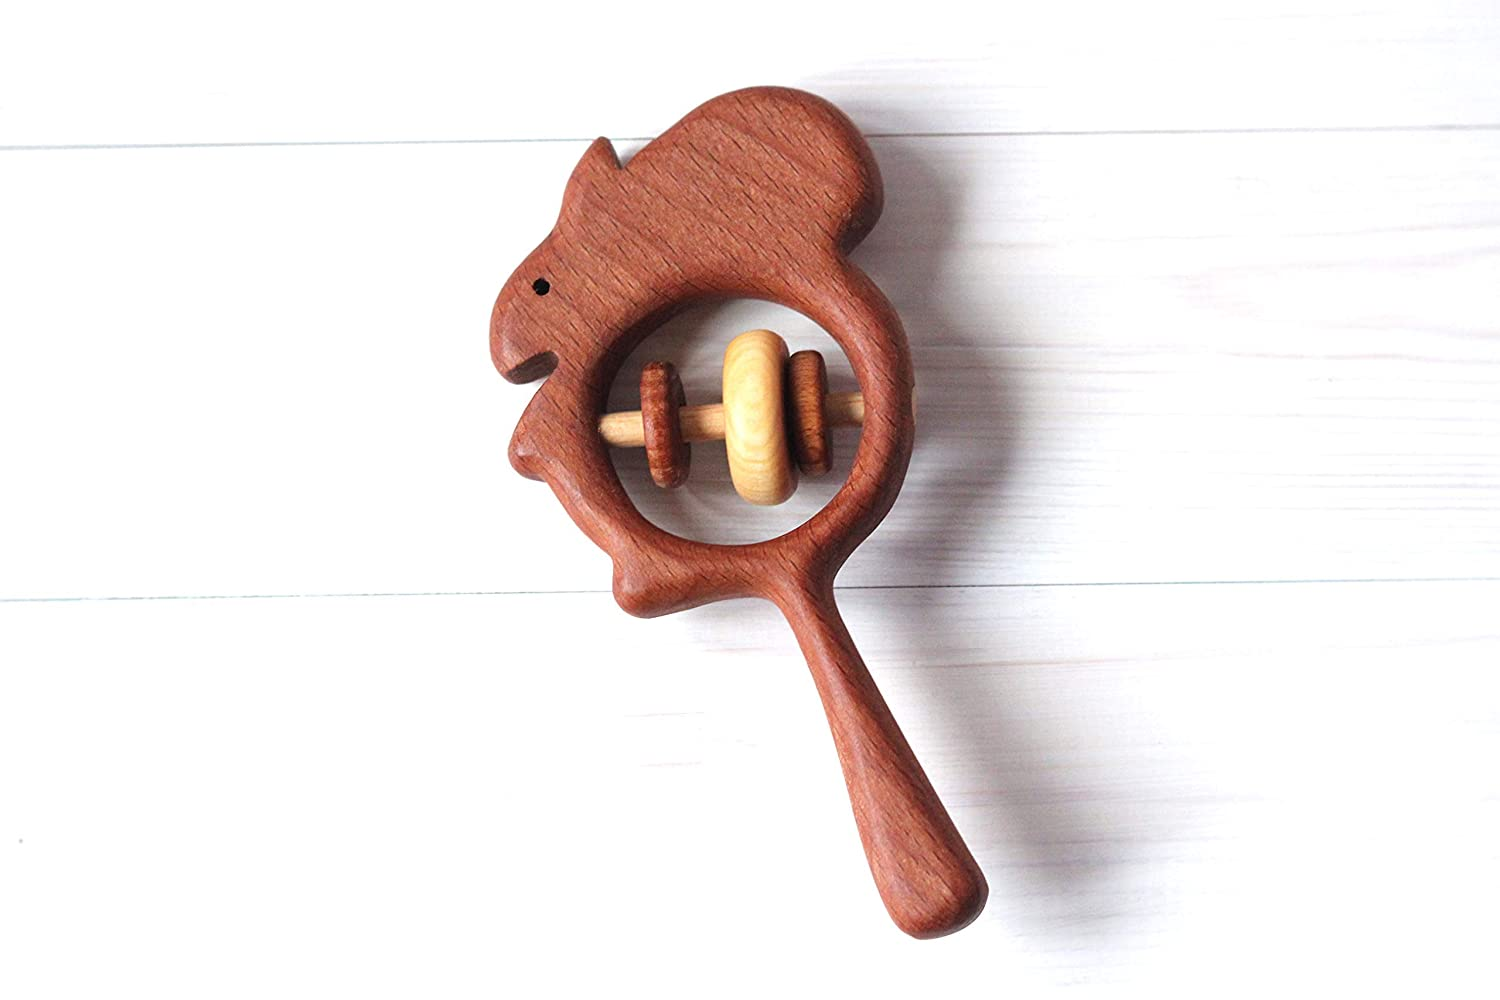 Wooden squirrel rattle, Wooden teether, Teething toy, Wooden Rattle,Rattle for newborn, Rattle for baby,